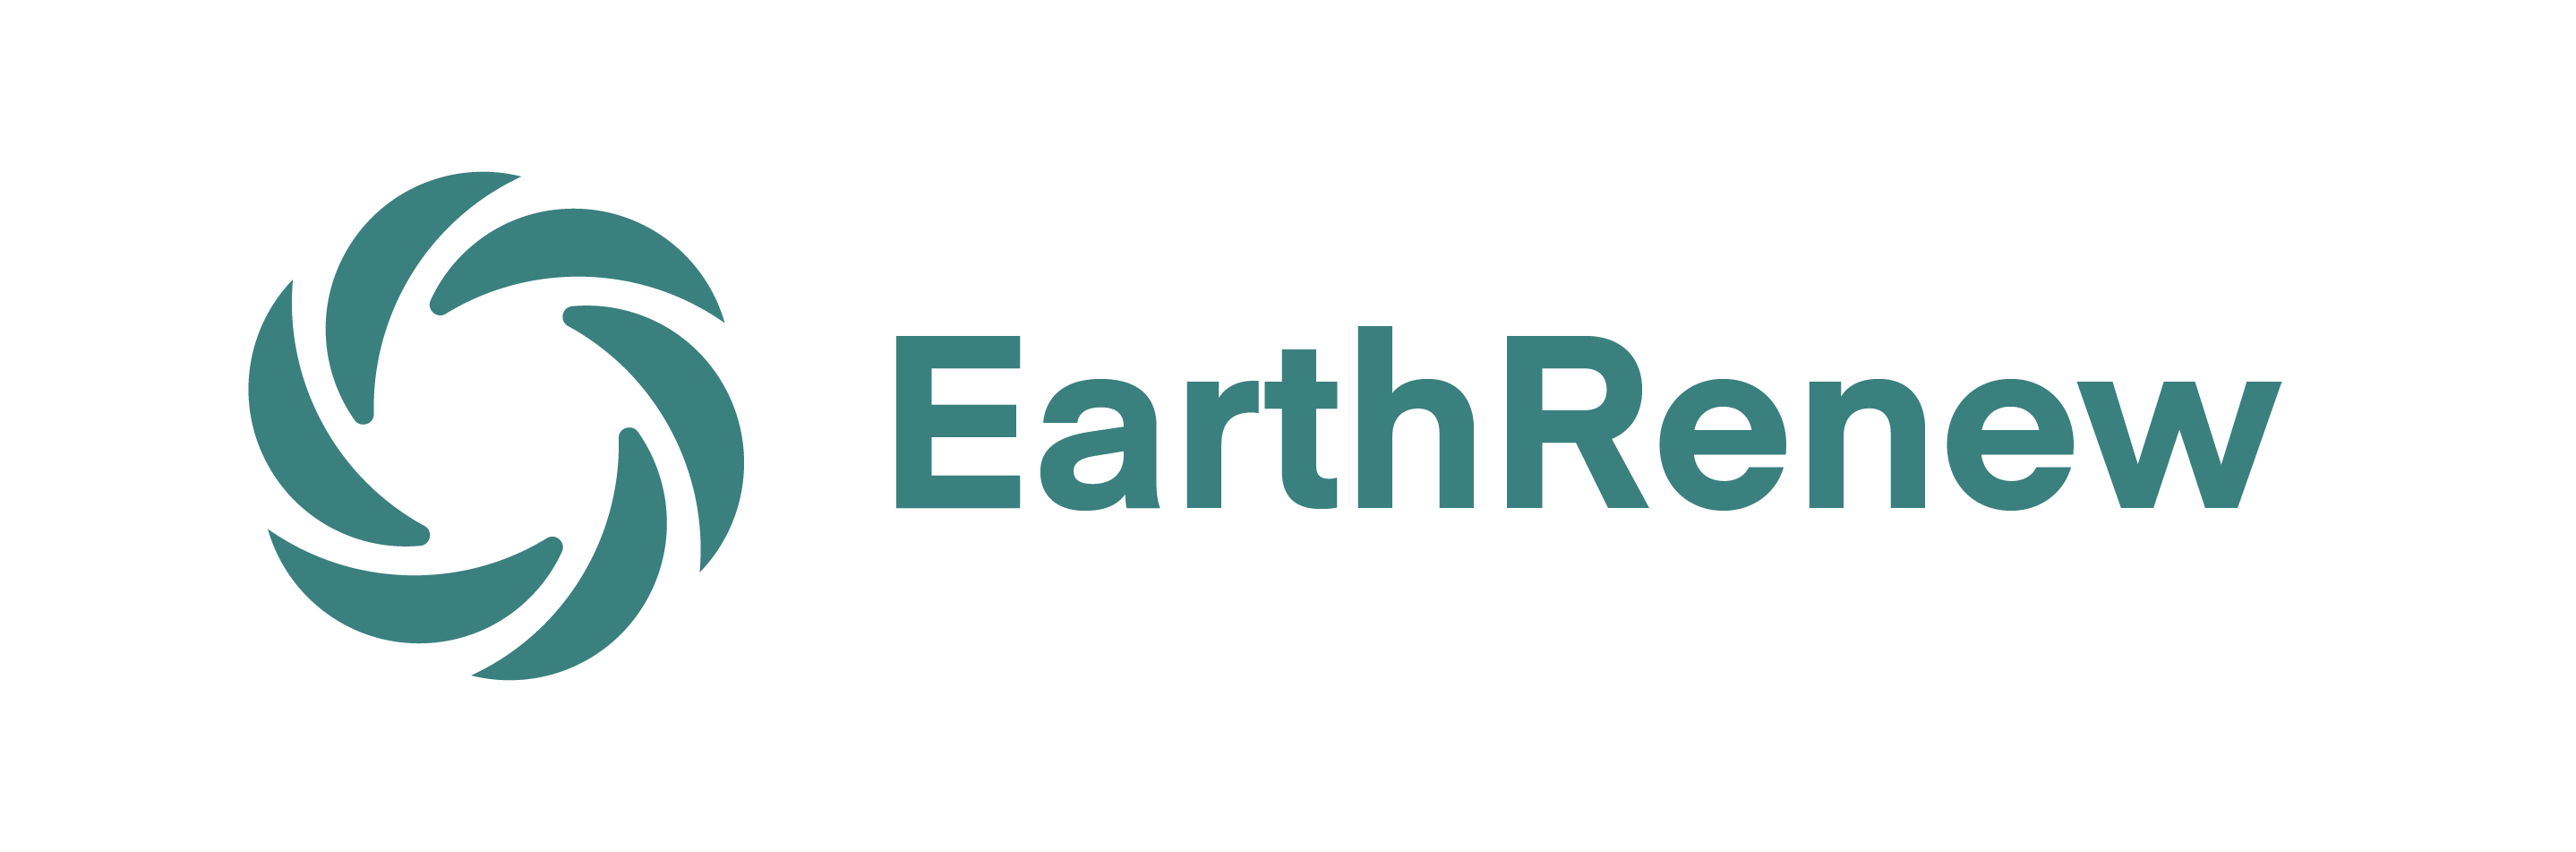 REPEAT - EarthRenew Signs Letter of Intent for New Facility on 50,000 Head Feedlot in Colorado